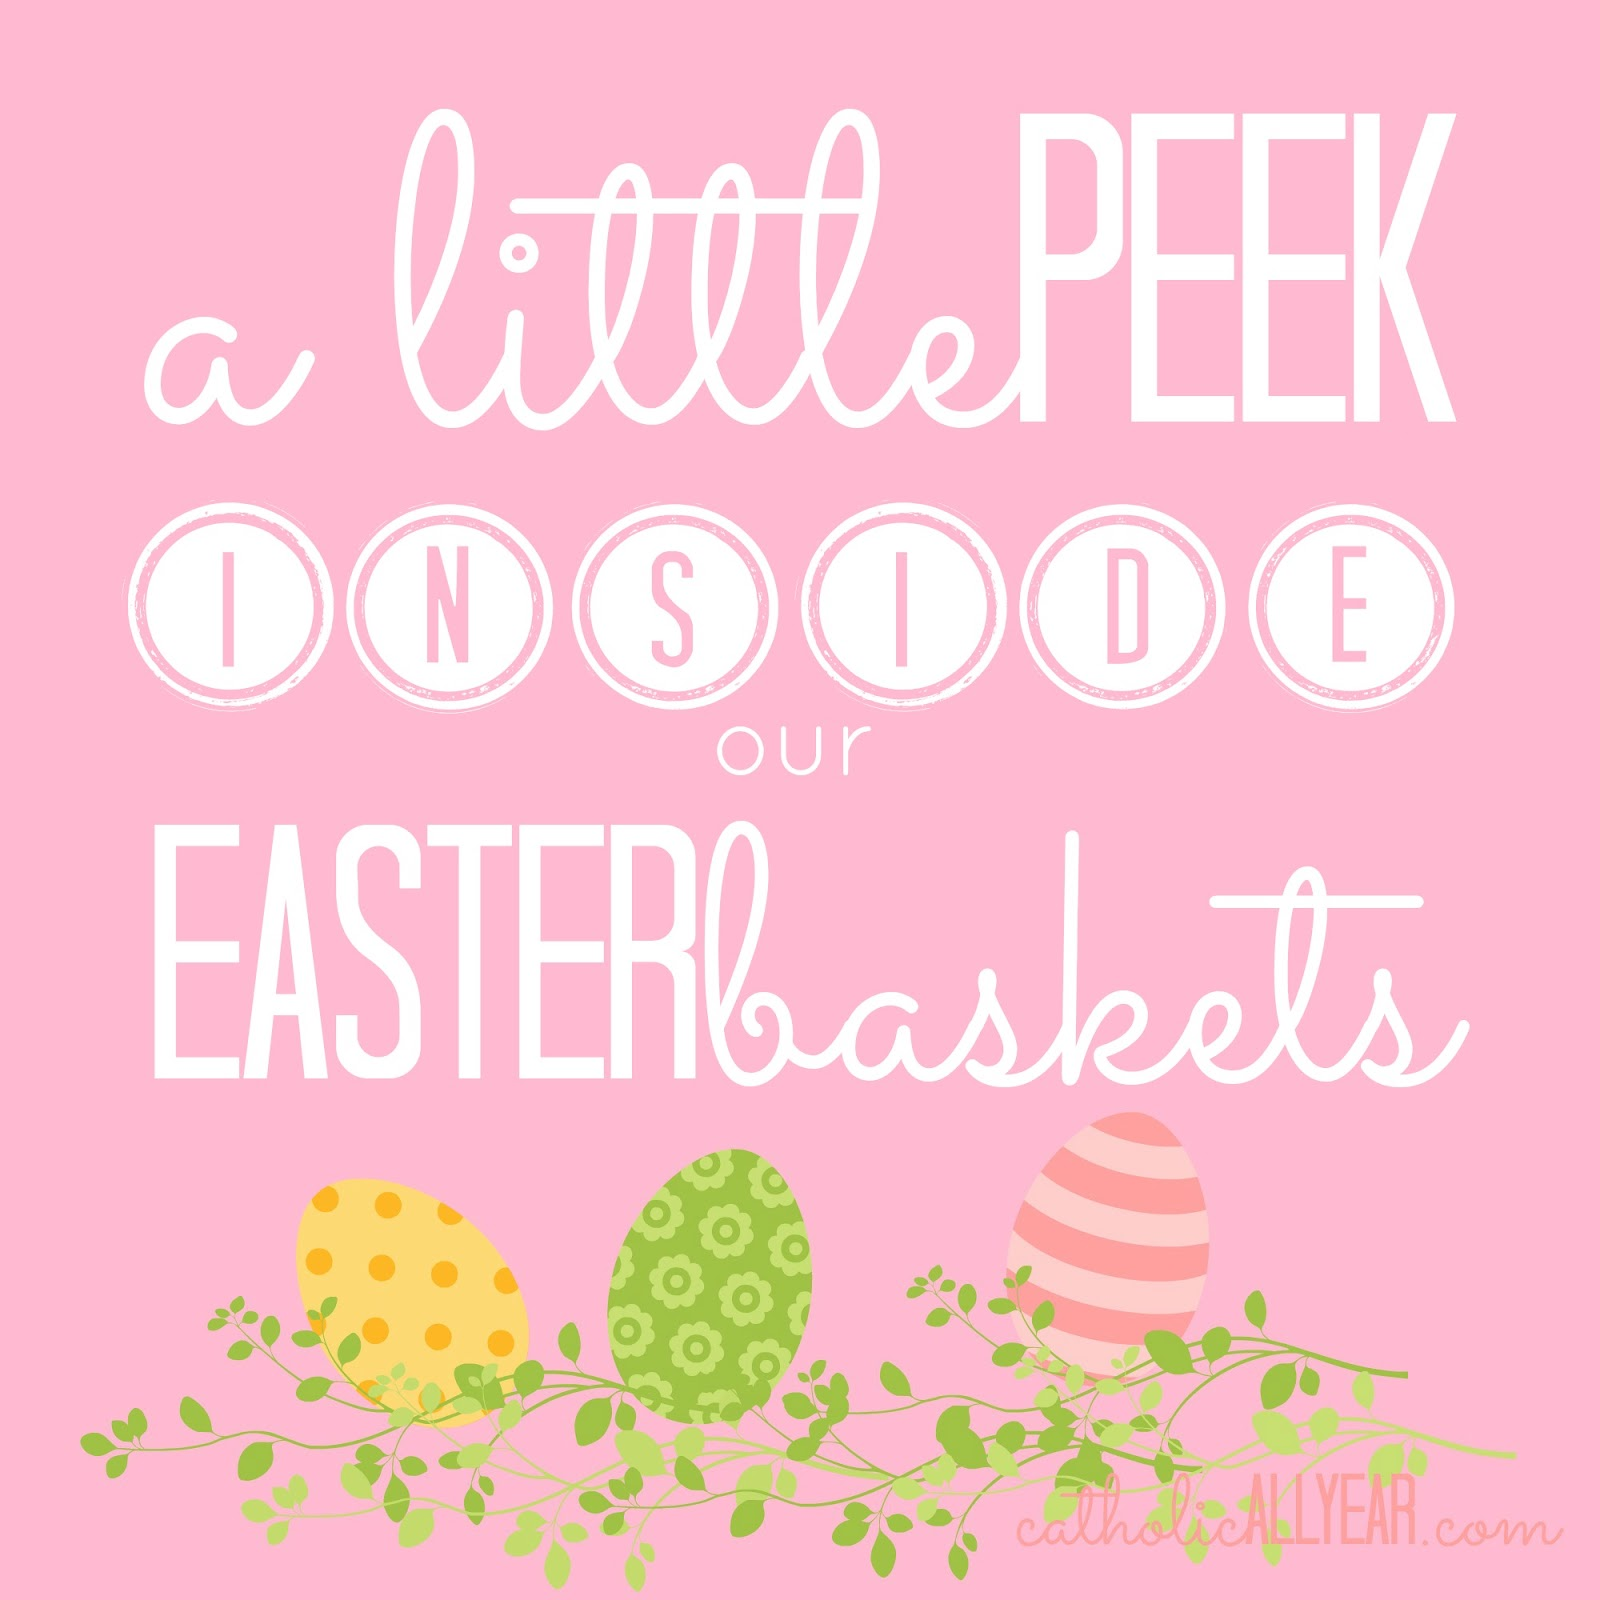 Catholic All Year: A Little Peek Inside Our Easter Baskets (hint ...